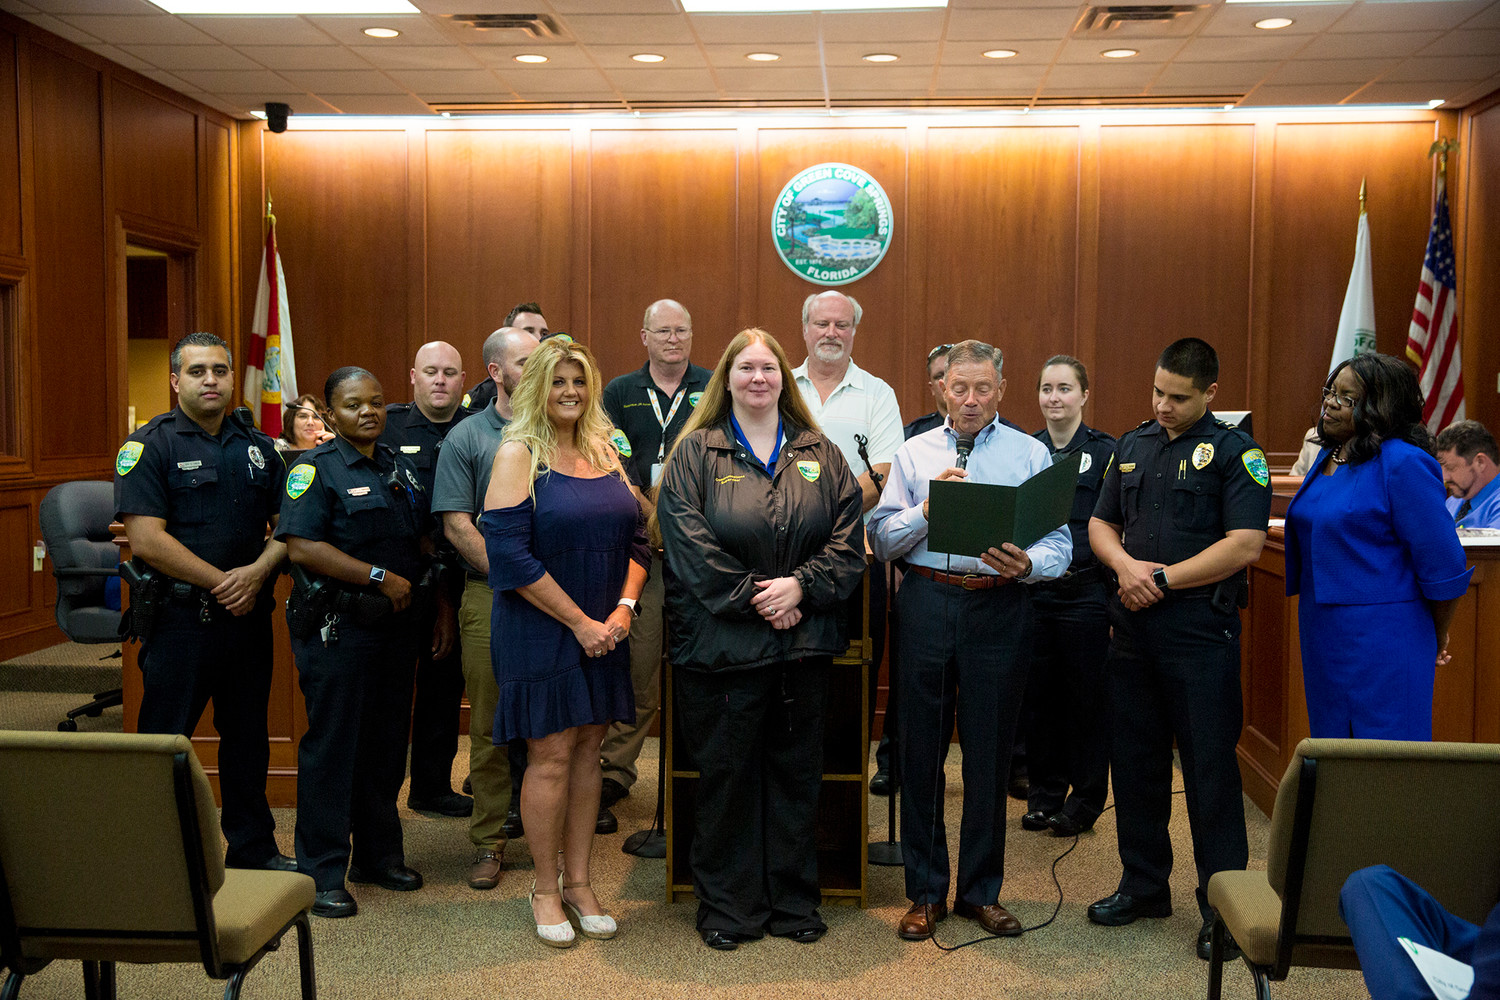 Green Cove Springs Mayor Mitch Timberlake reads a Proclamation Tuesday evening in honor of National Public Safety Telecommunicators Week.  Several officers from the Green Cove Police Department showed their support by standing up with Communications Officer Sharon Adamson, left center, and the department's supervisor Brandi Acres, center, who have both worked every day for eight months while the department looked to hire additional dispatchers. Timberlake noted at the end that despite the women's round-the-clock shifts, they are still able to keep response times at between three and four minutes compared to the 45 minutes of the Clay County Sheriff's Office.